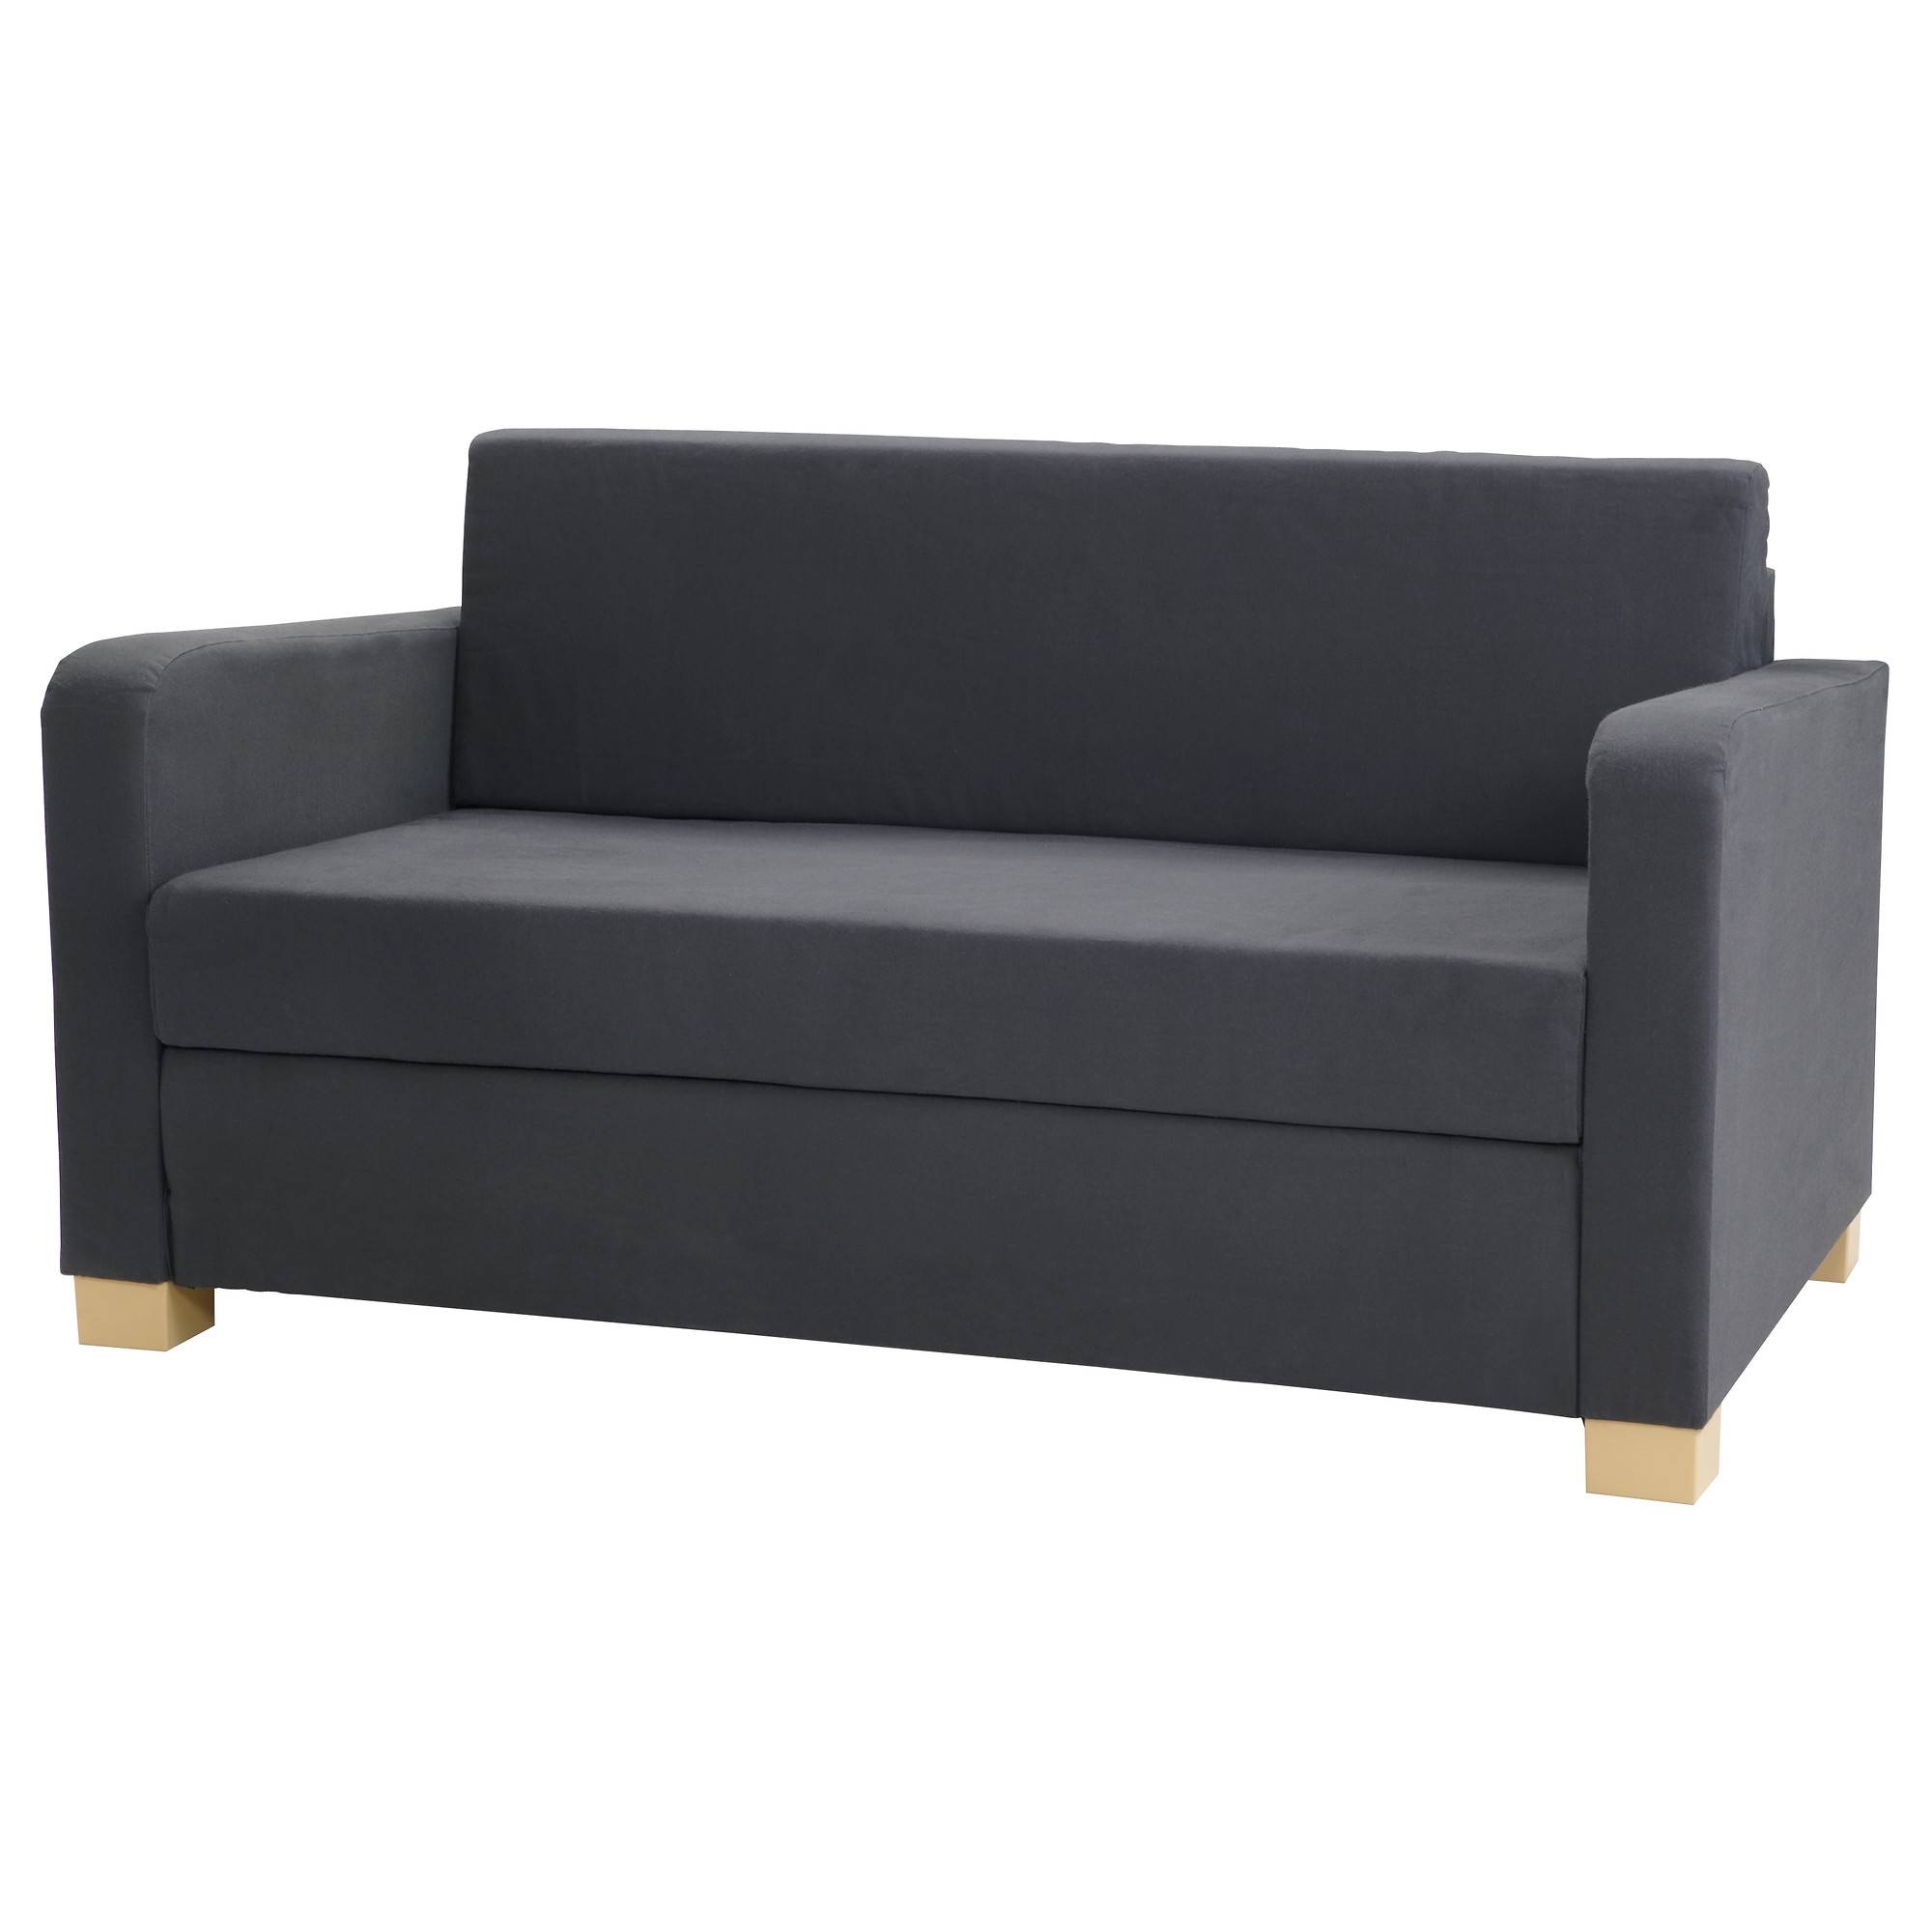 Sofa Beds & Futons - Ikea with Cheap Black Sofas (Image 22 of 30)